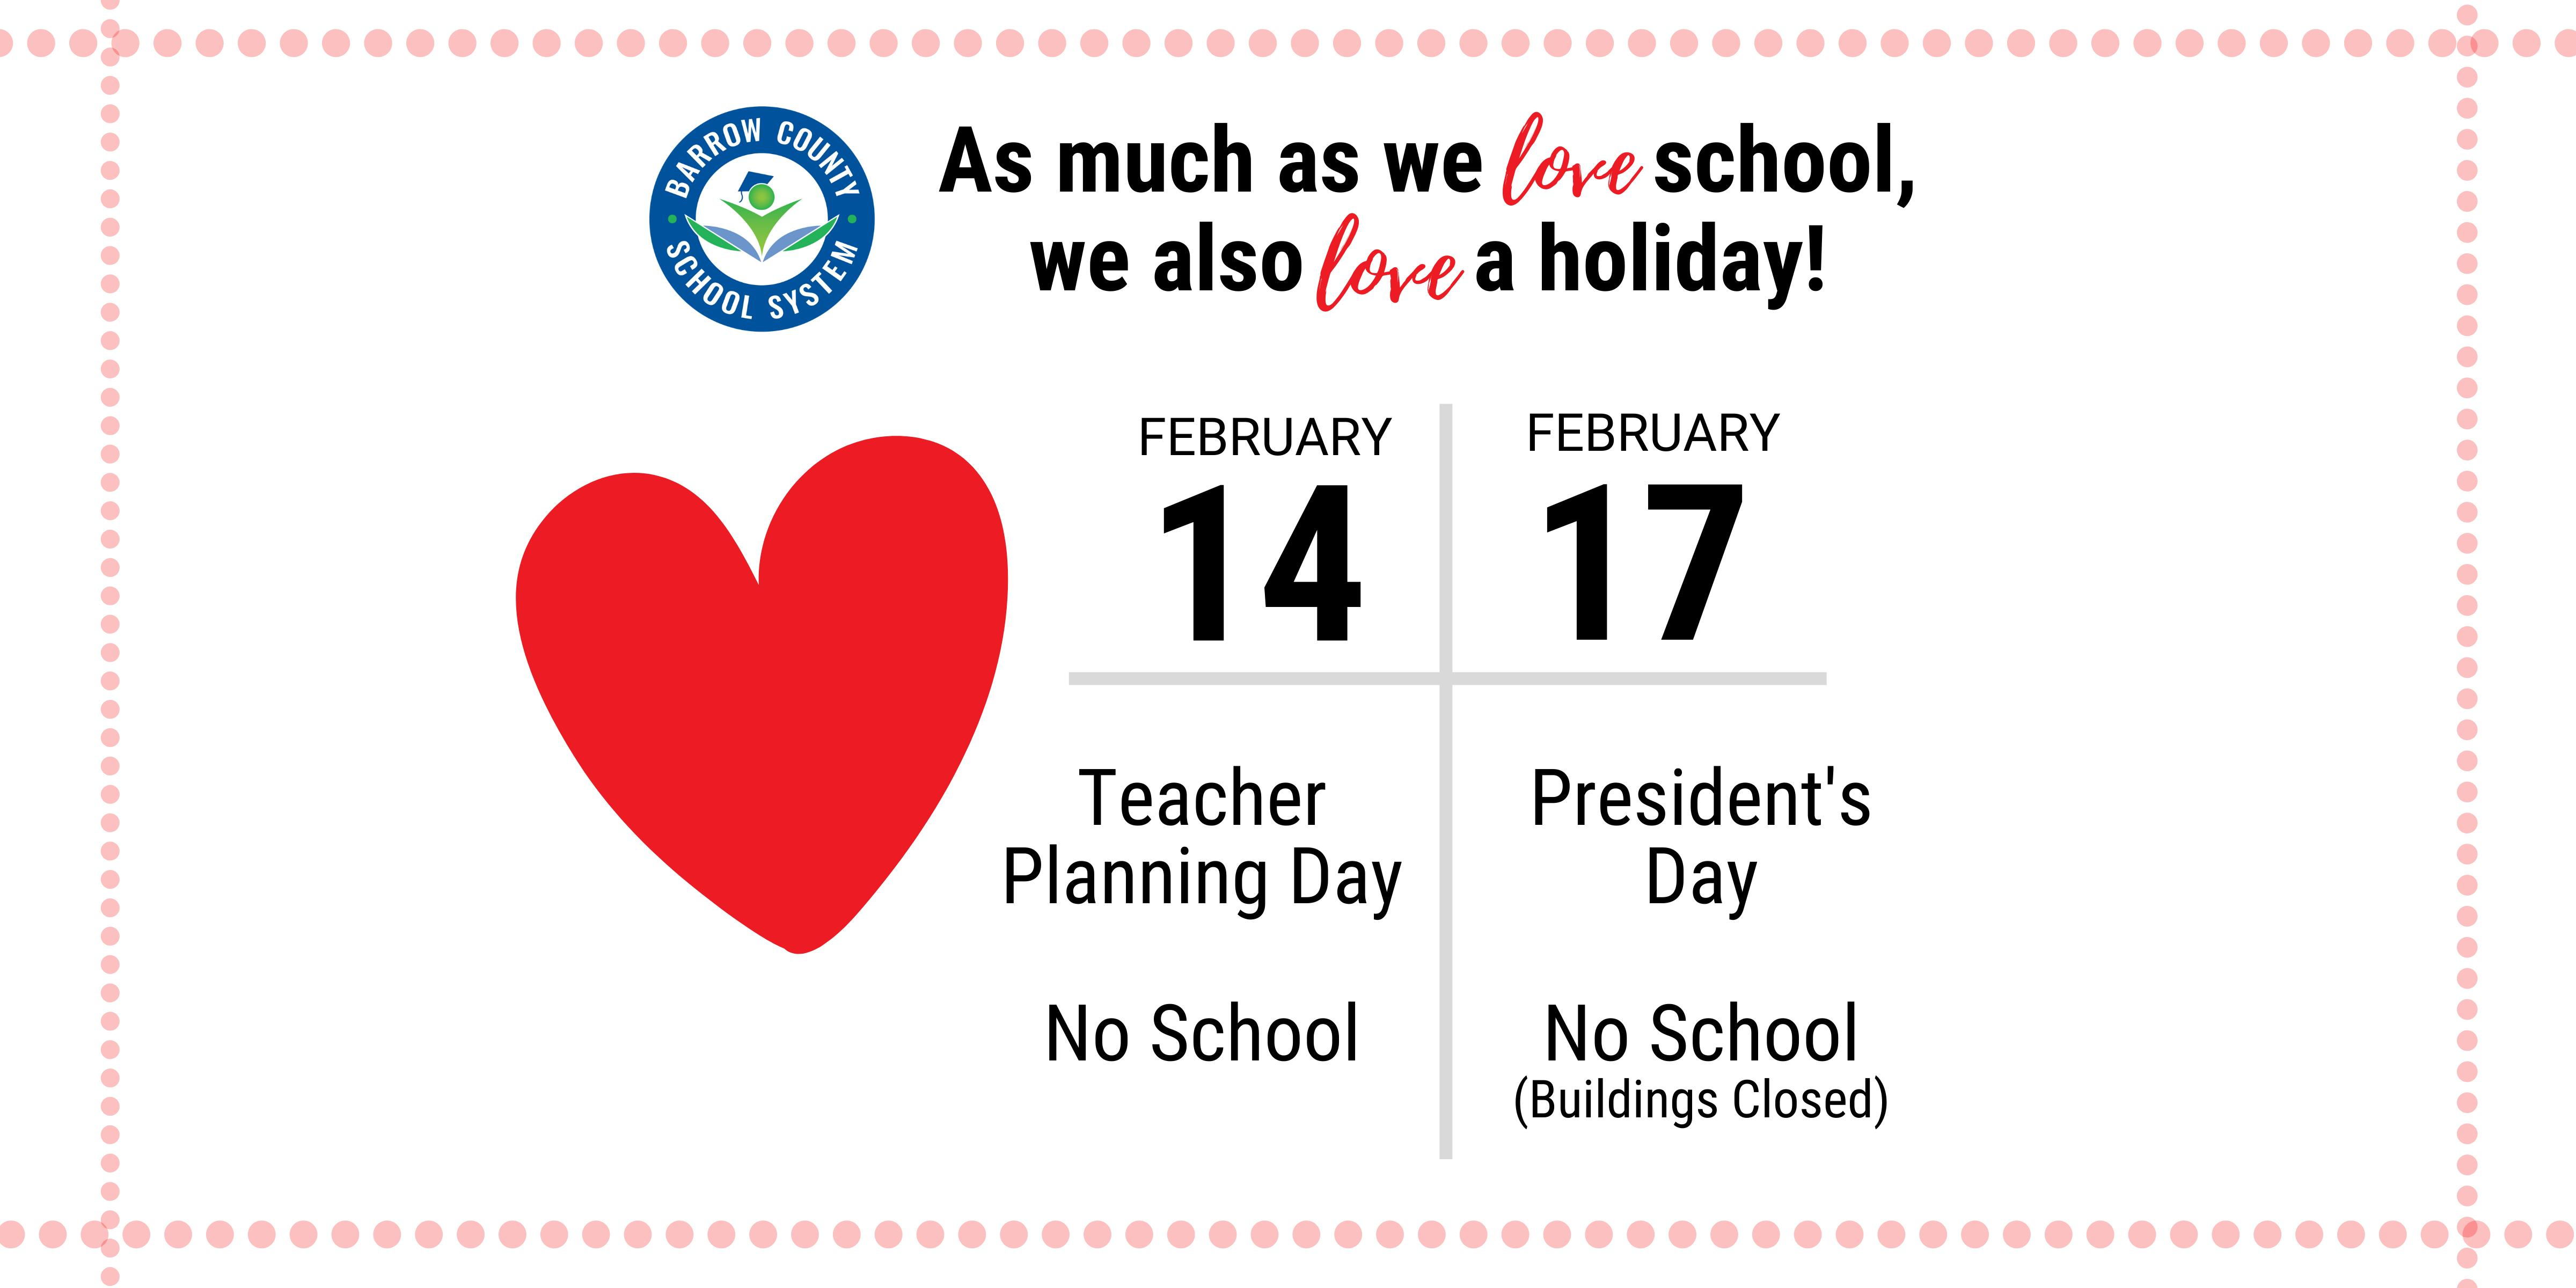 No school for students on February 14 and 17